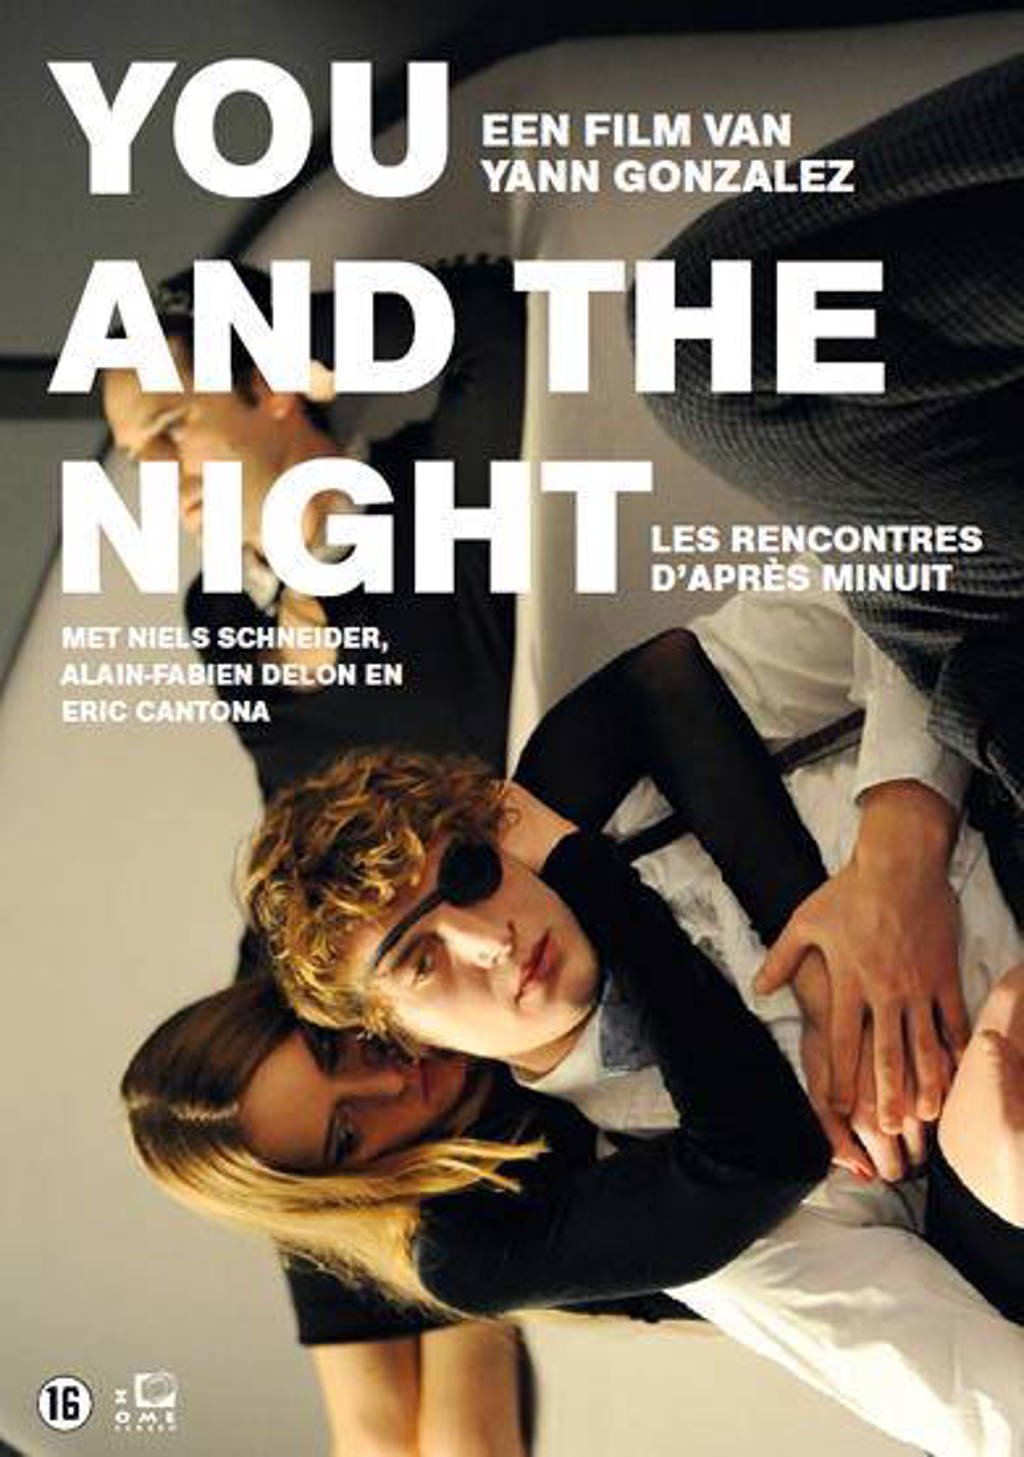 You and the night (DVD)